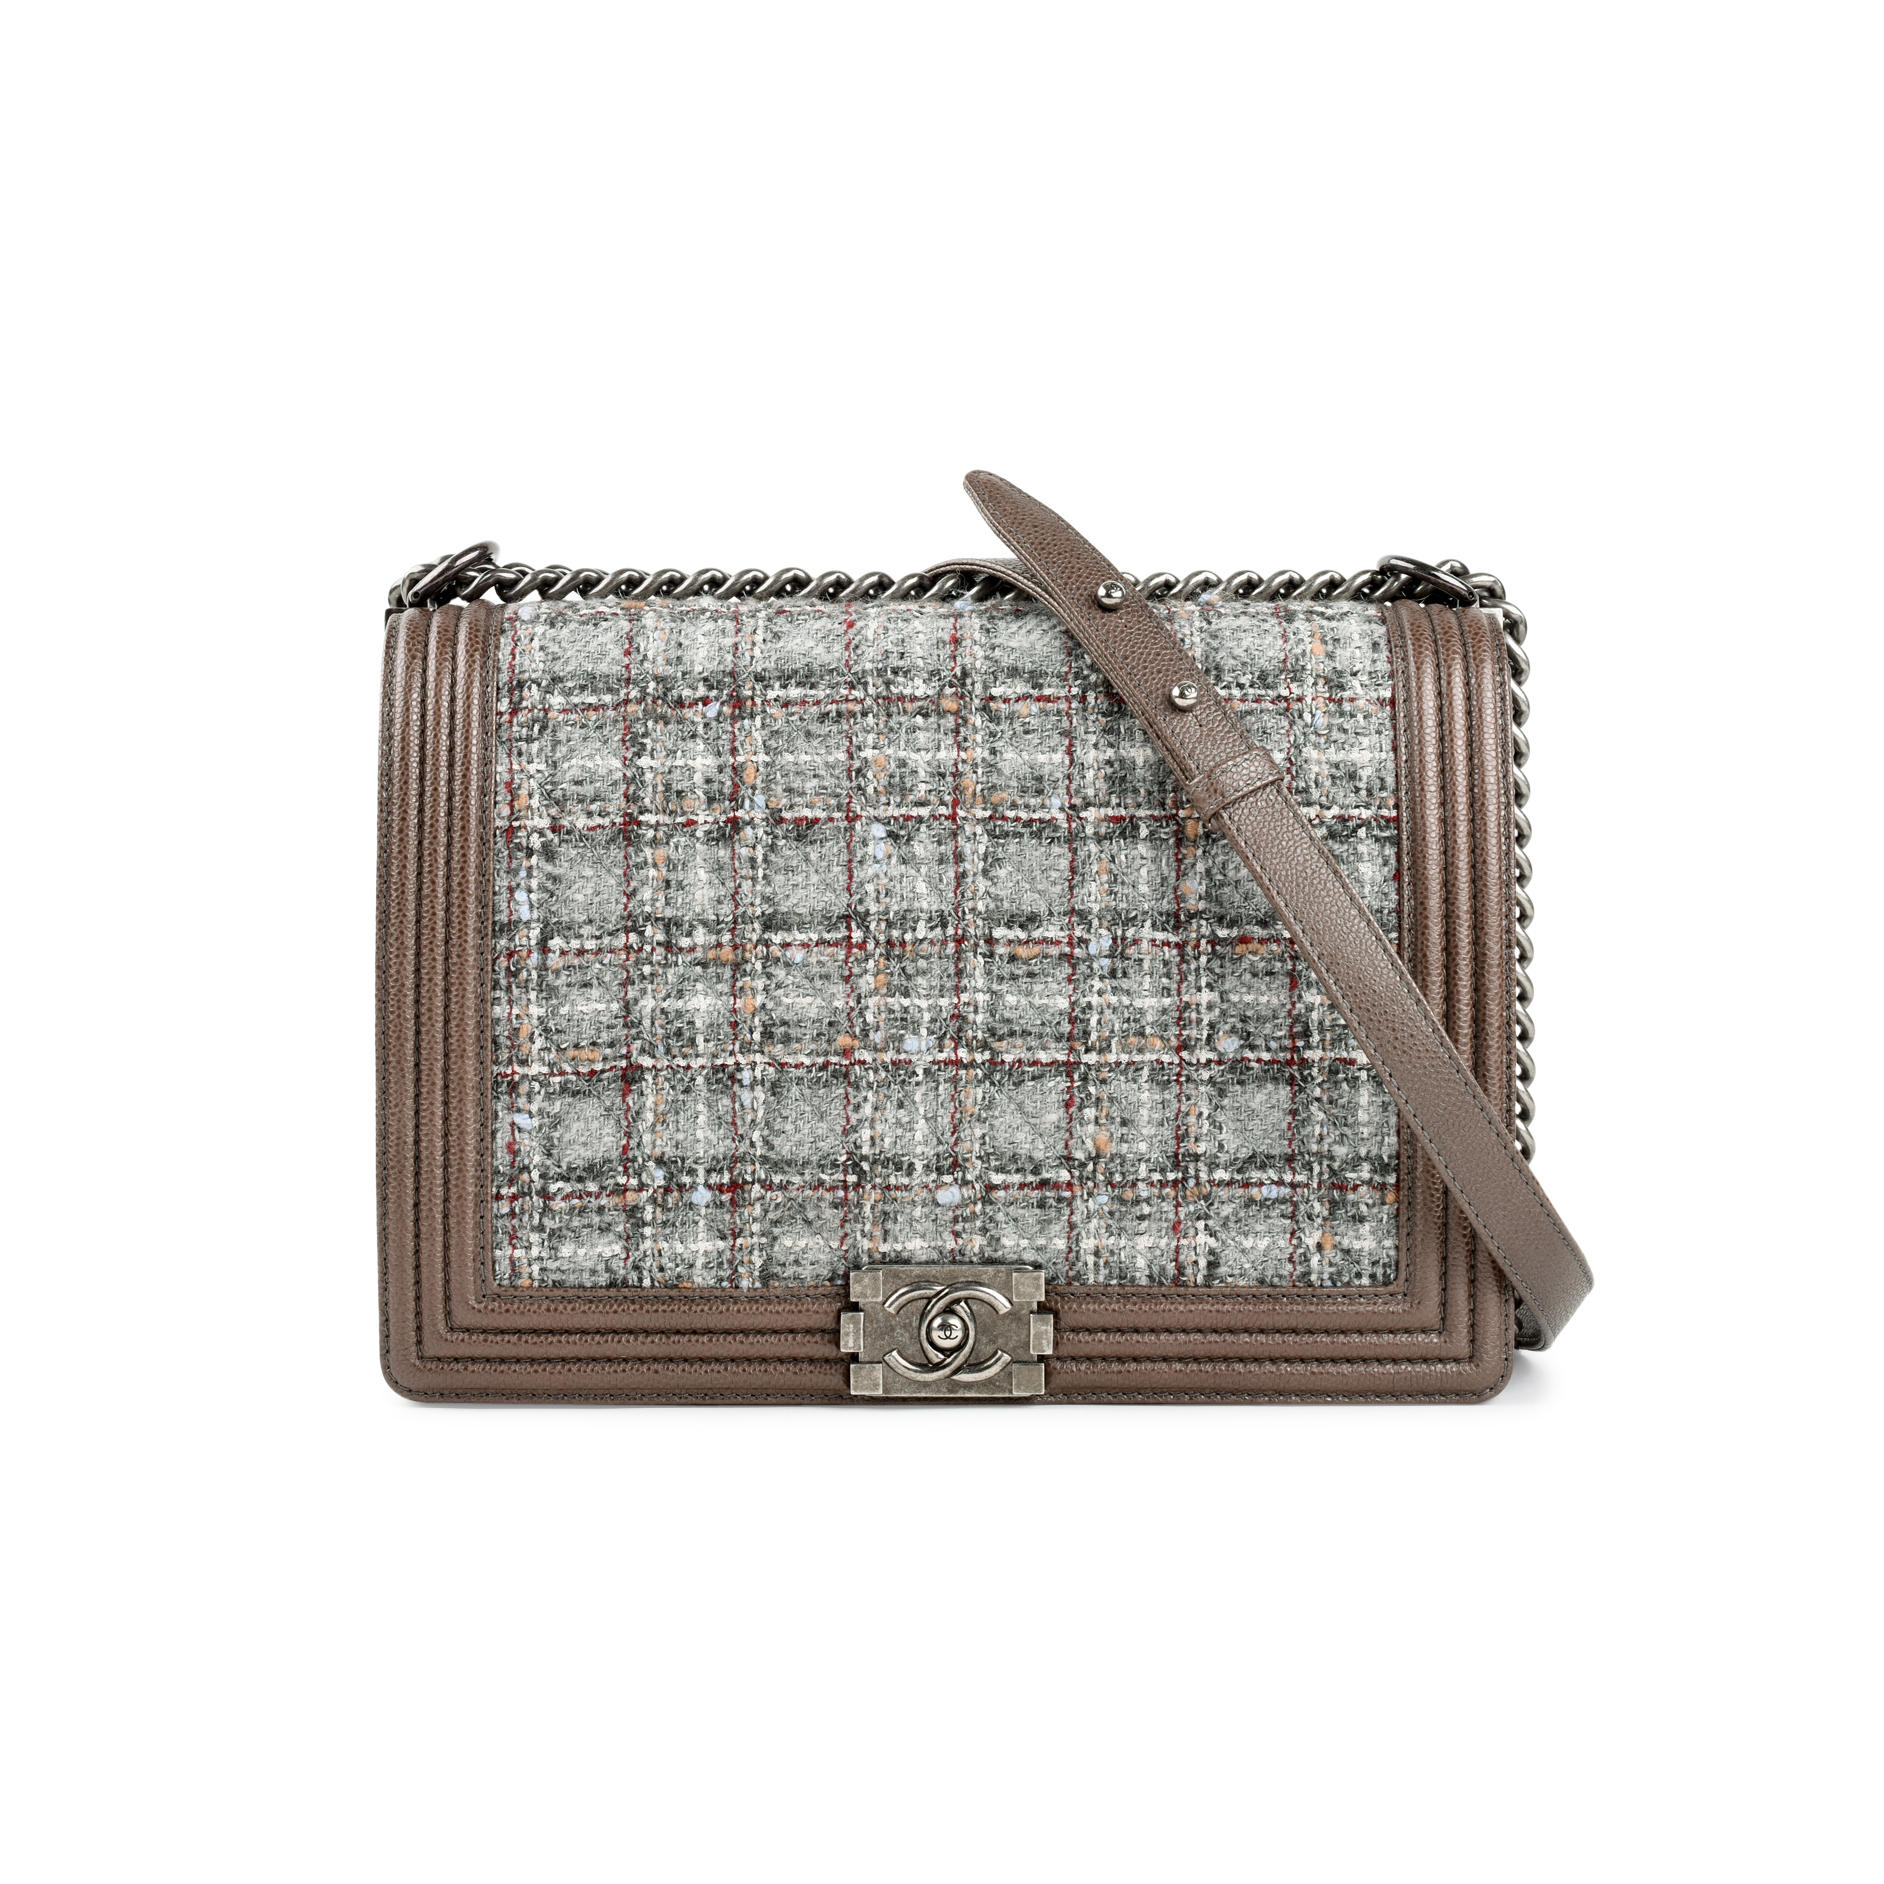 8f94889475e4 Authentic Second Hand Chanel Limited Edition Tweed Large Boy Bag  (PSS-200-01340) | THE FIFTH COLLECTION